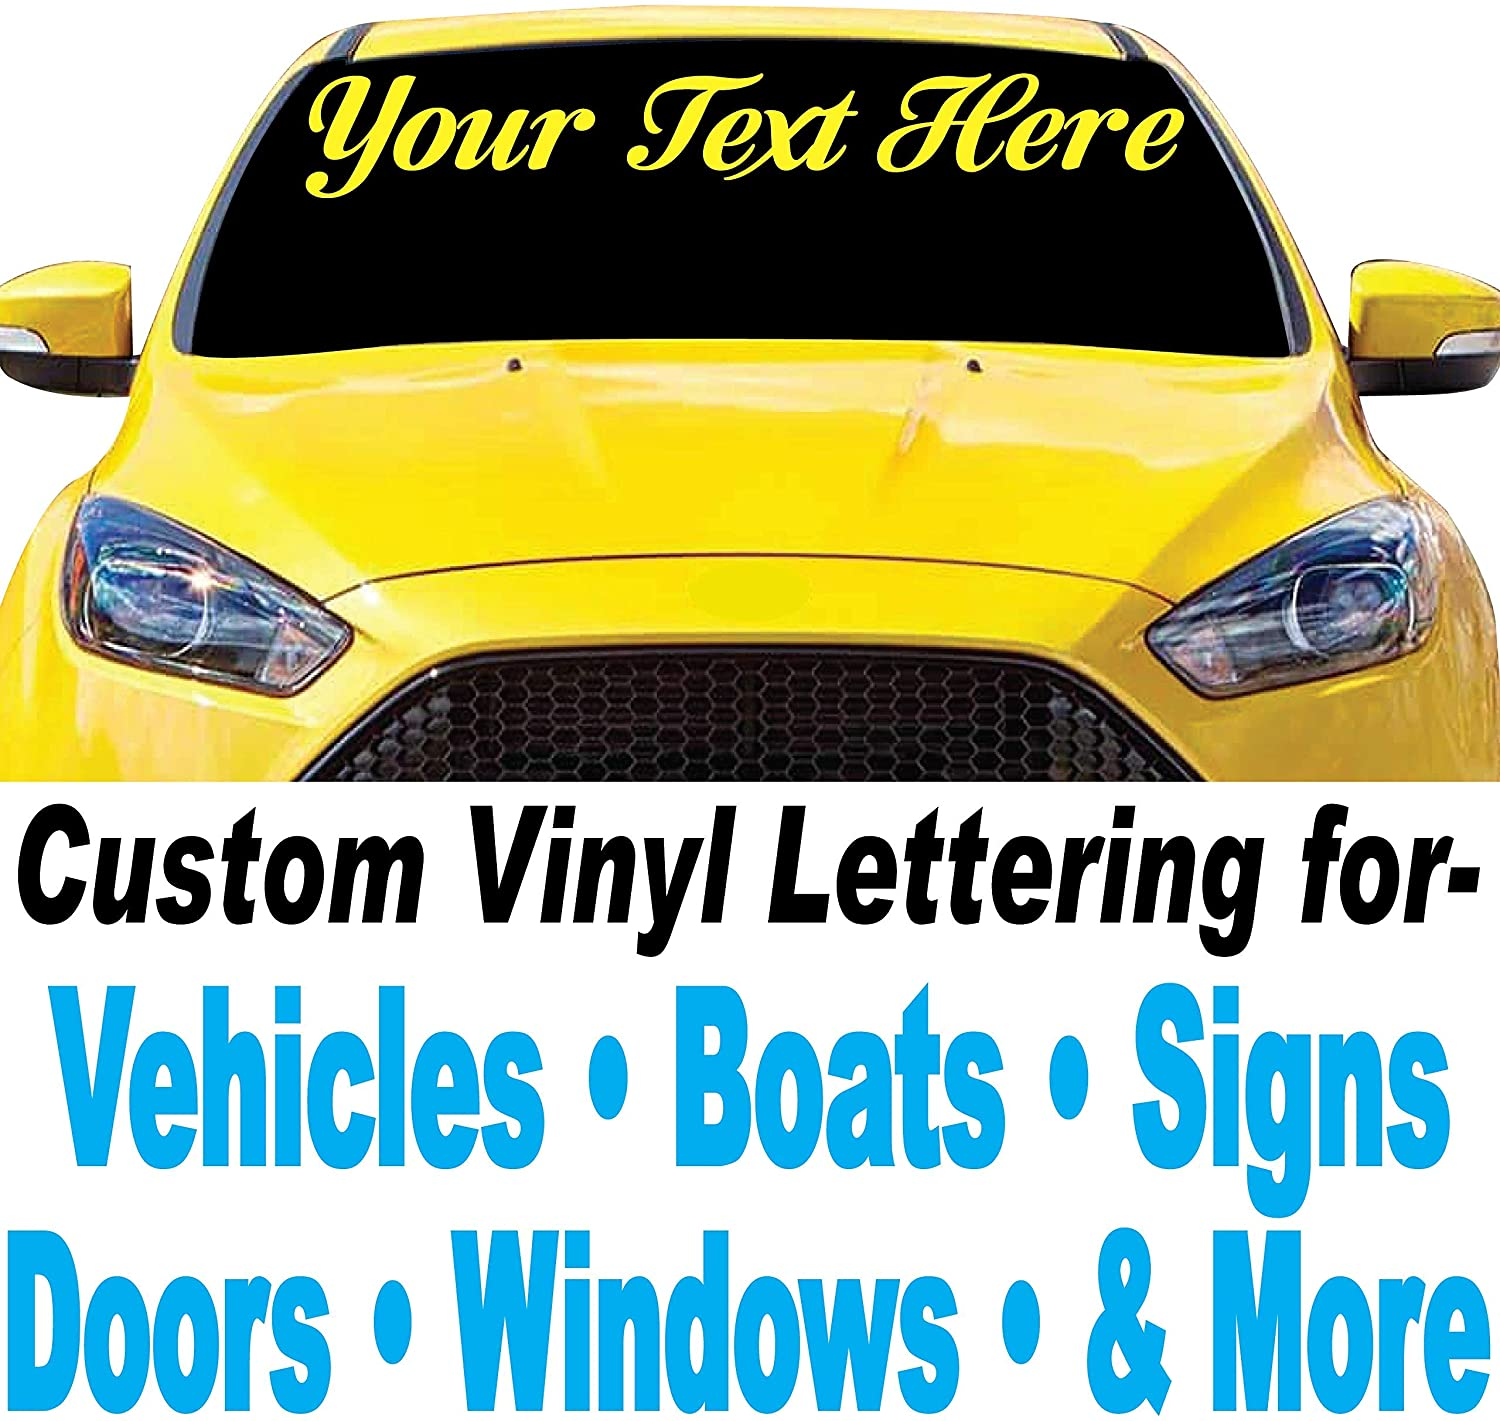 1060 Graphics 2.5 high Custom Vinyl Lettering - Design Your Own Decals - for Car, Truck, Boat, Sign Letters, Door, Window, Mailbox Numbers, and More